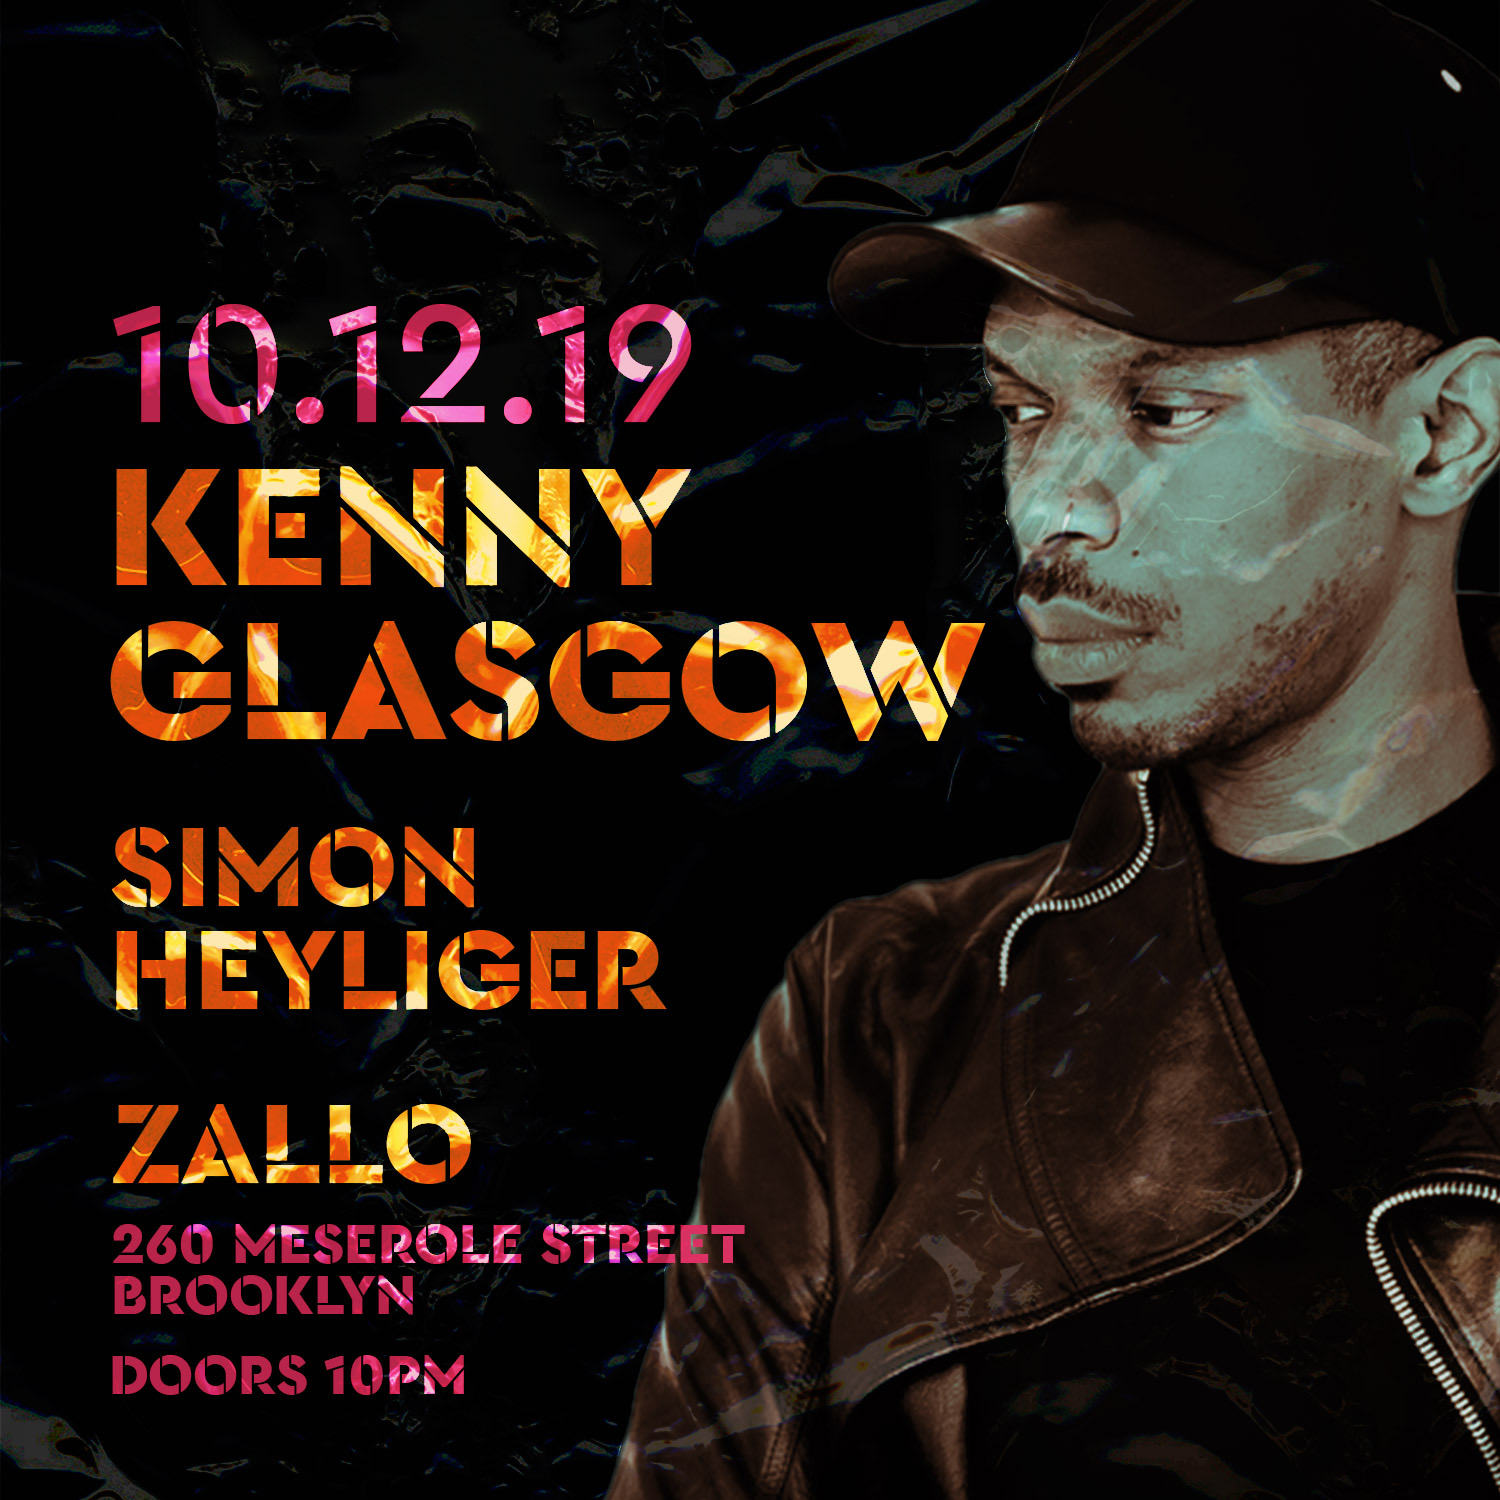 Kenny Glasgow poster with man on it